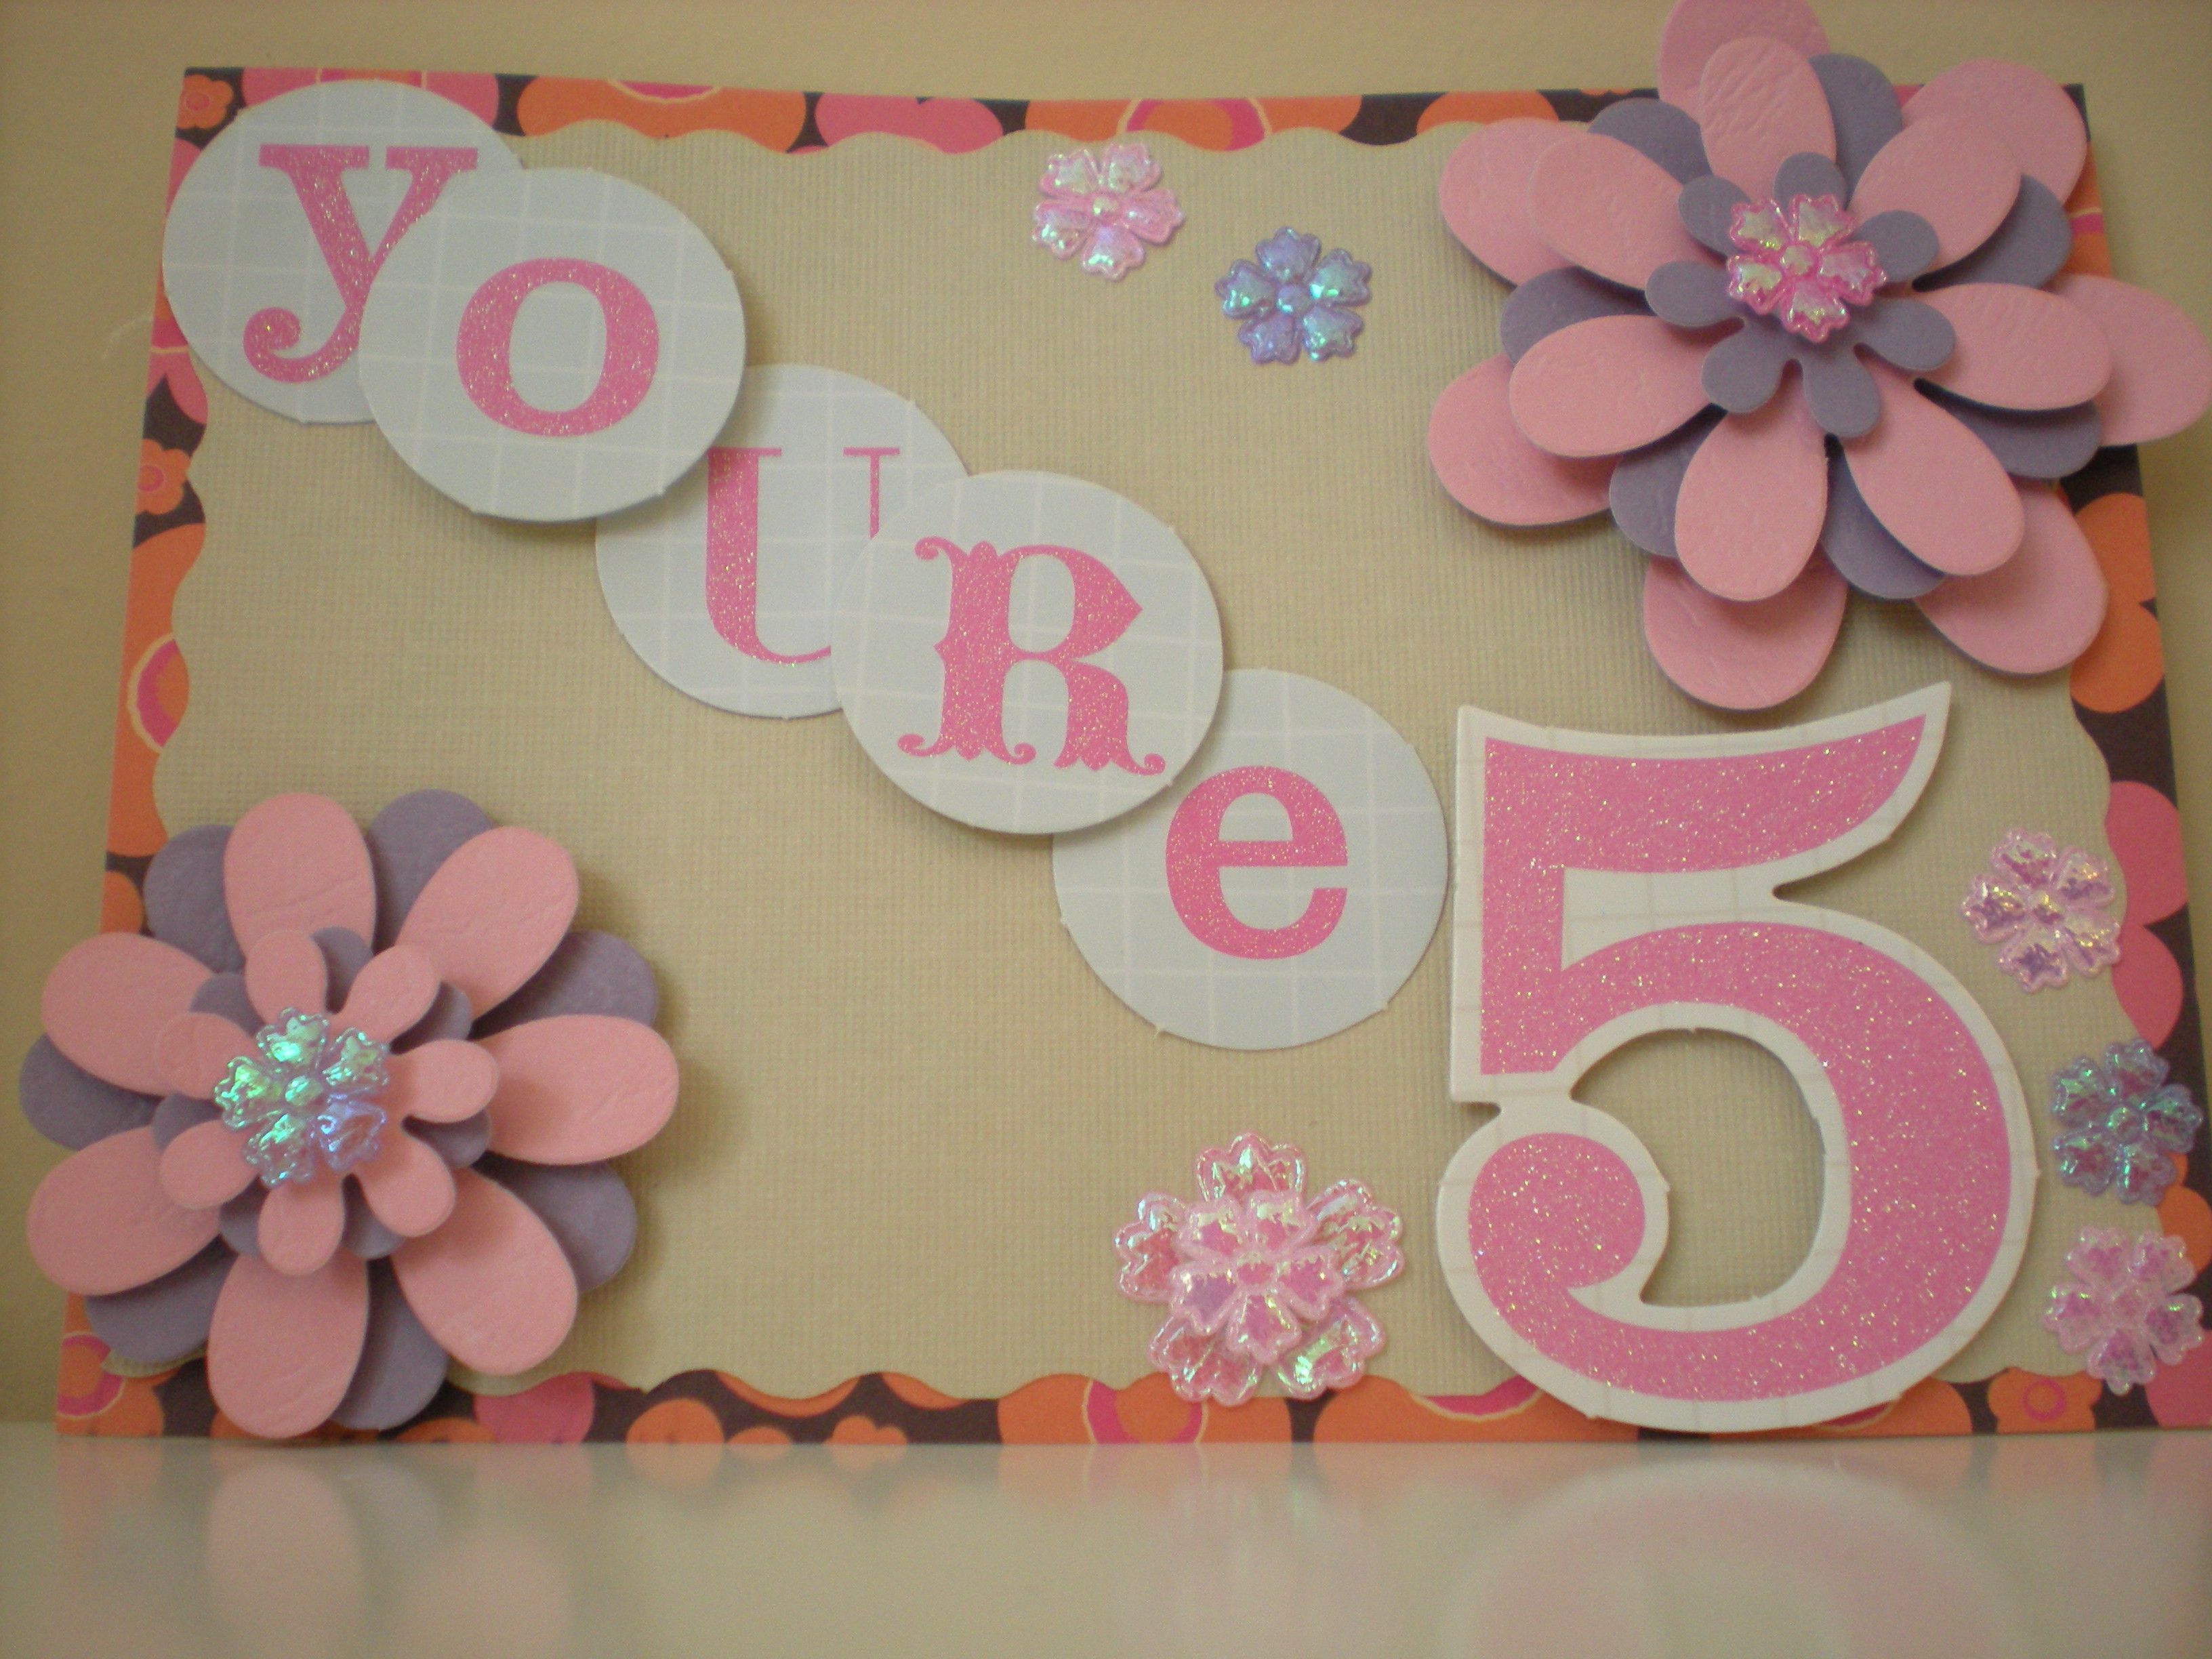 Homemade scrapbook ideas - My Diy Birthday Card For 5 Years Old